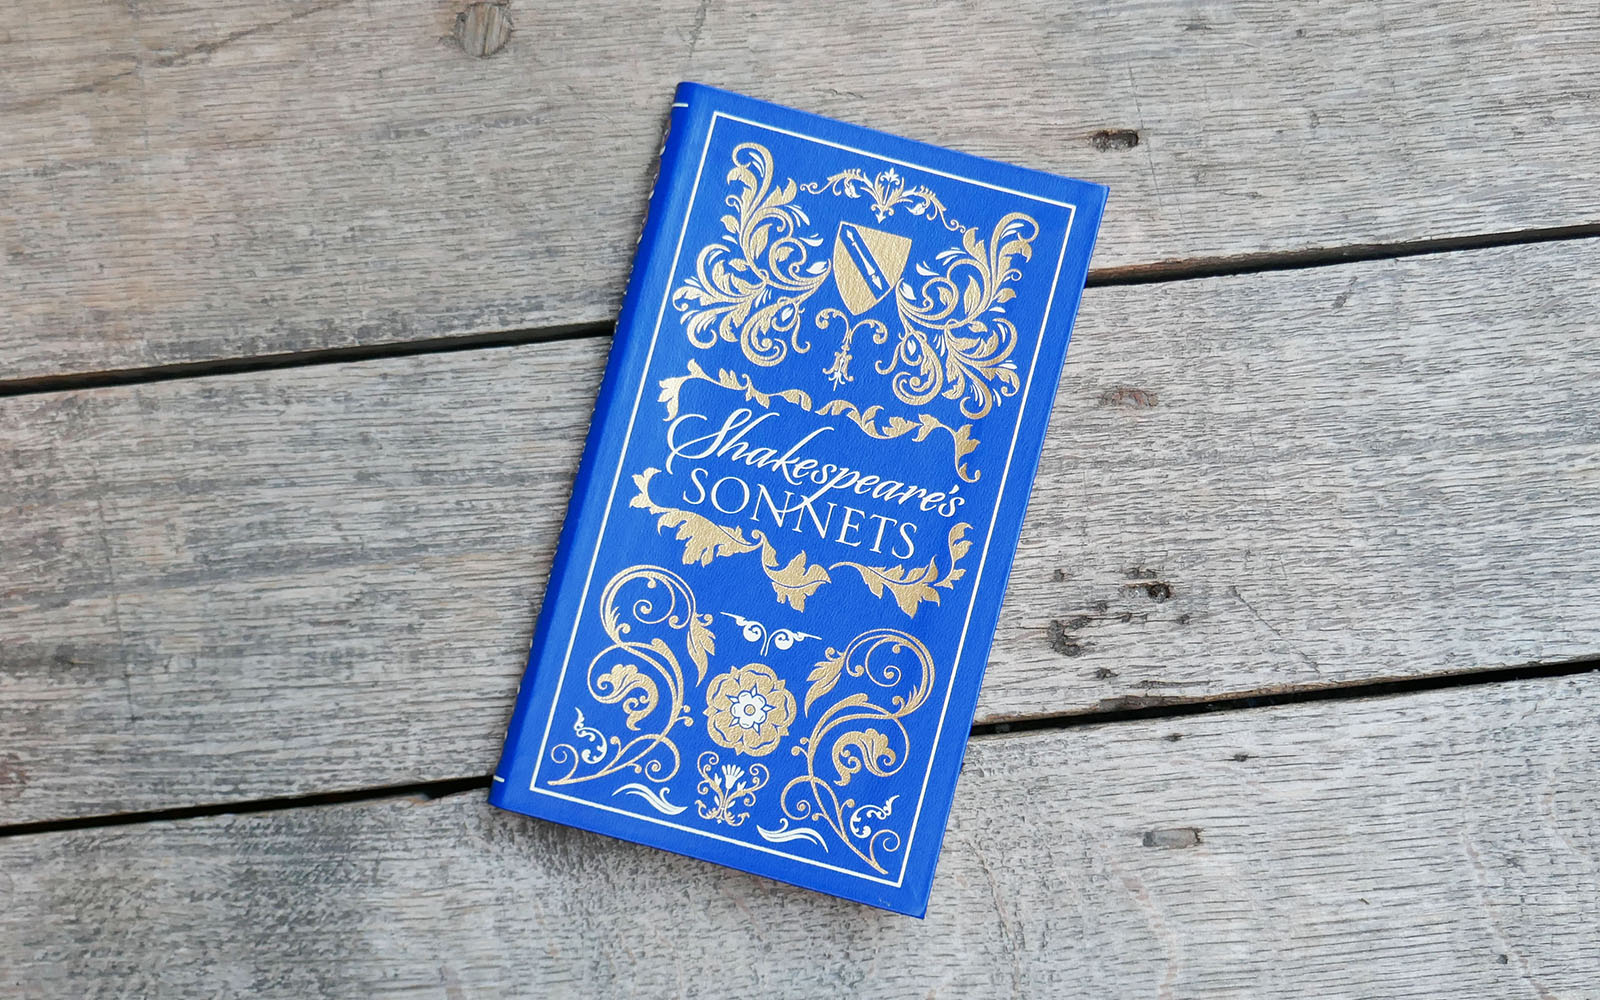 Sonnets book